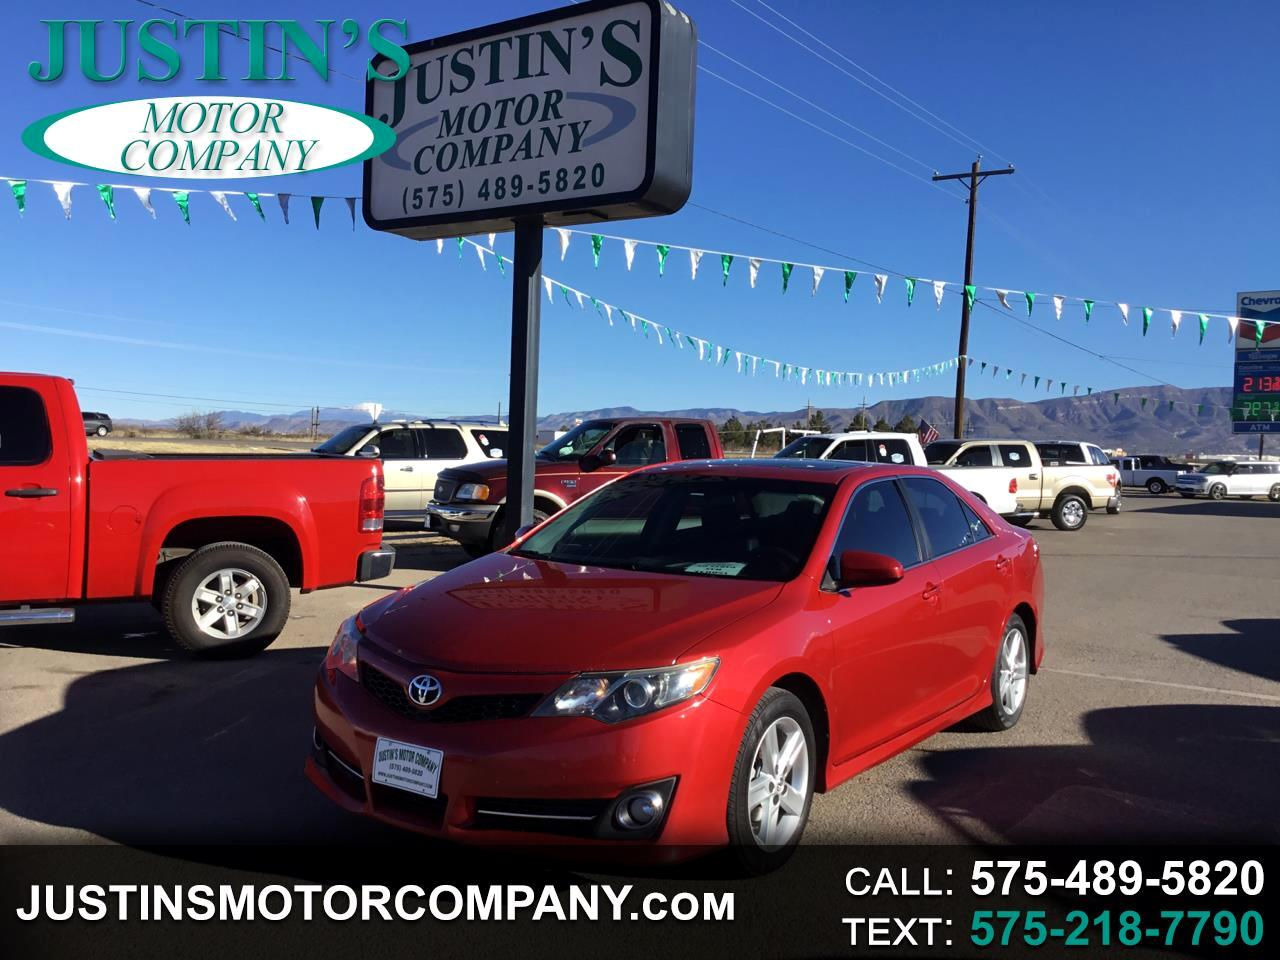 2012 Toyota Camry 4dr Sdn I4 Auto L (Natl)